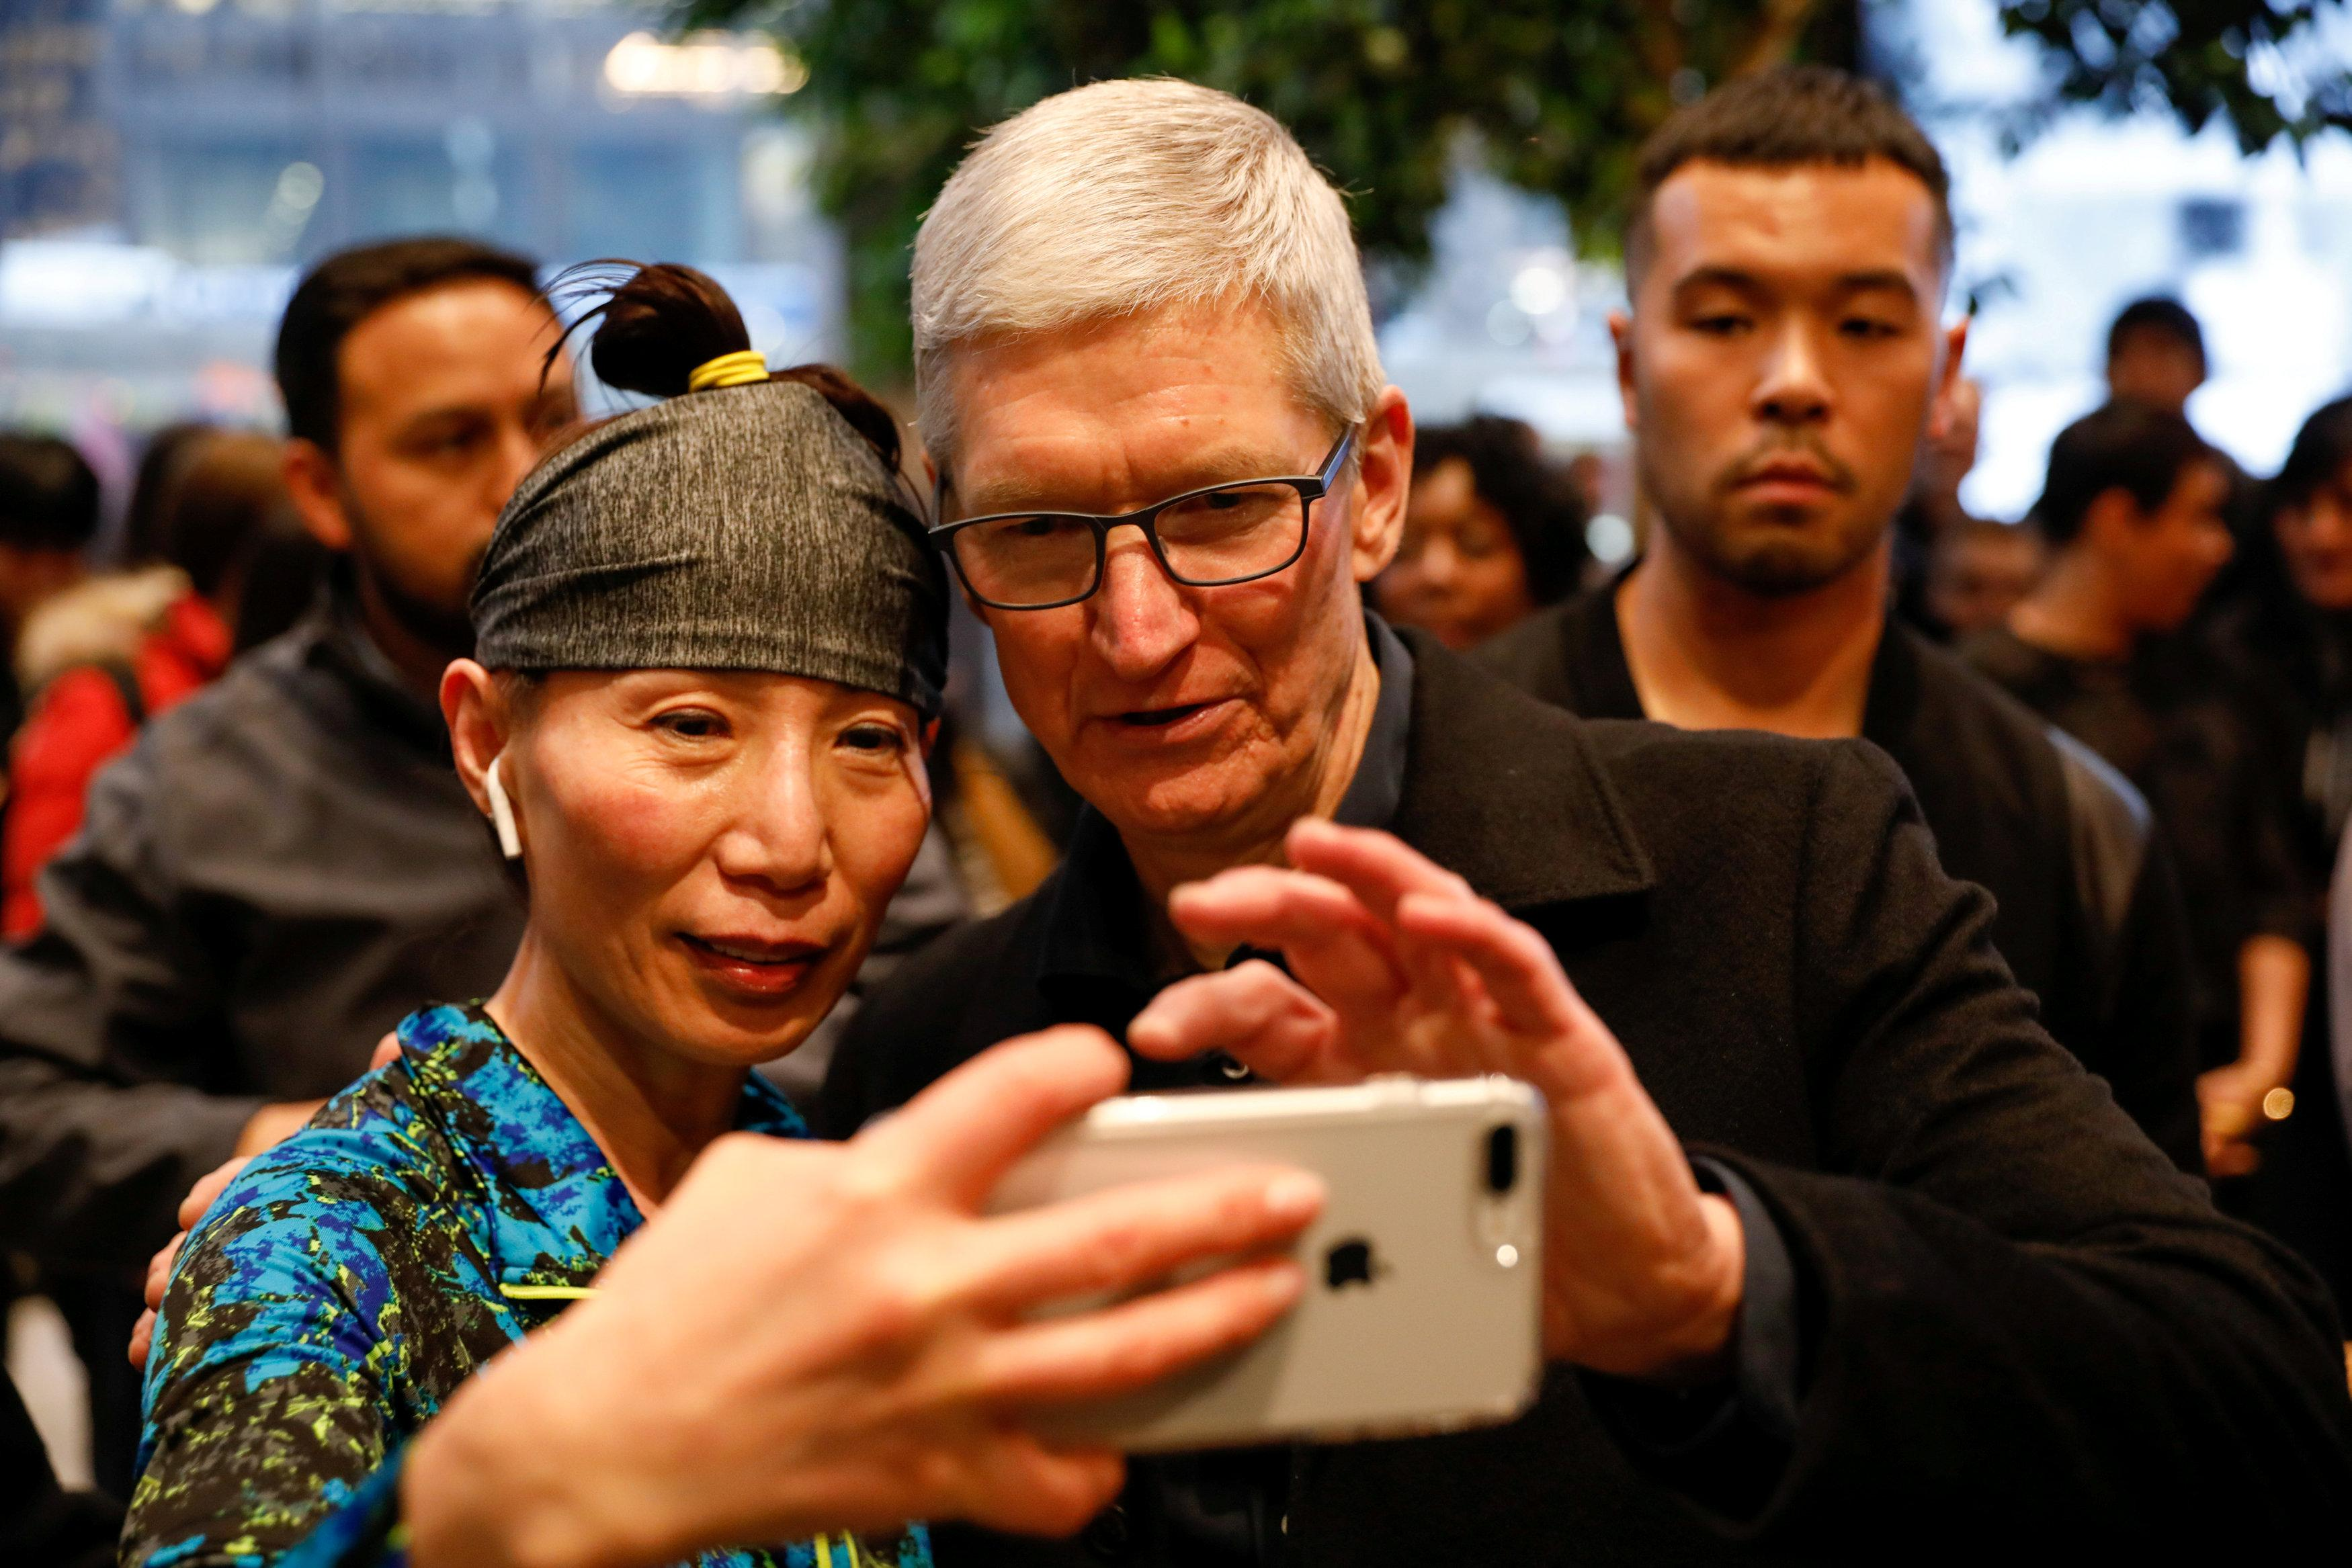 Tim Cook, Chief Executive Officer of Apple Inc., takes a selfie with a customer and her iPhone as he visits the Apple Store in Chicago, Illinois, U.S., March 27, 2018.   John Gress